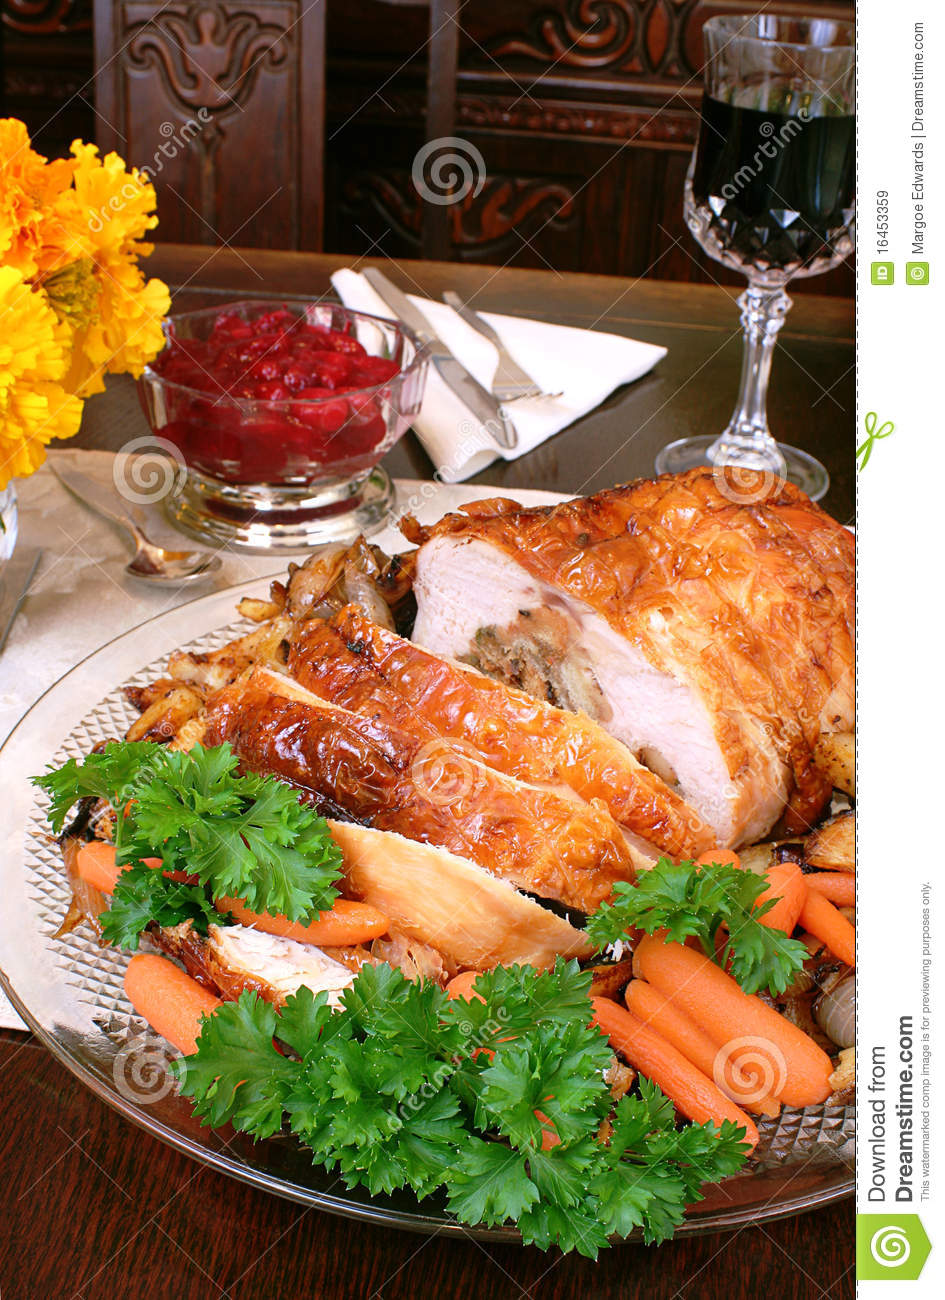 Turkey dinner royalty free stock images image 16453359 for Thanksgiving dinner with all the trimmings